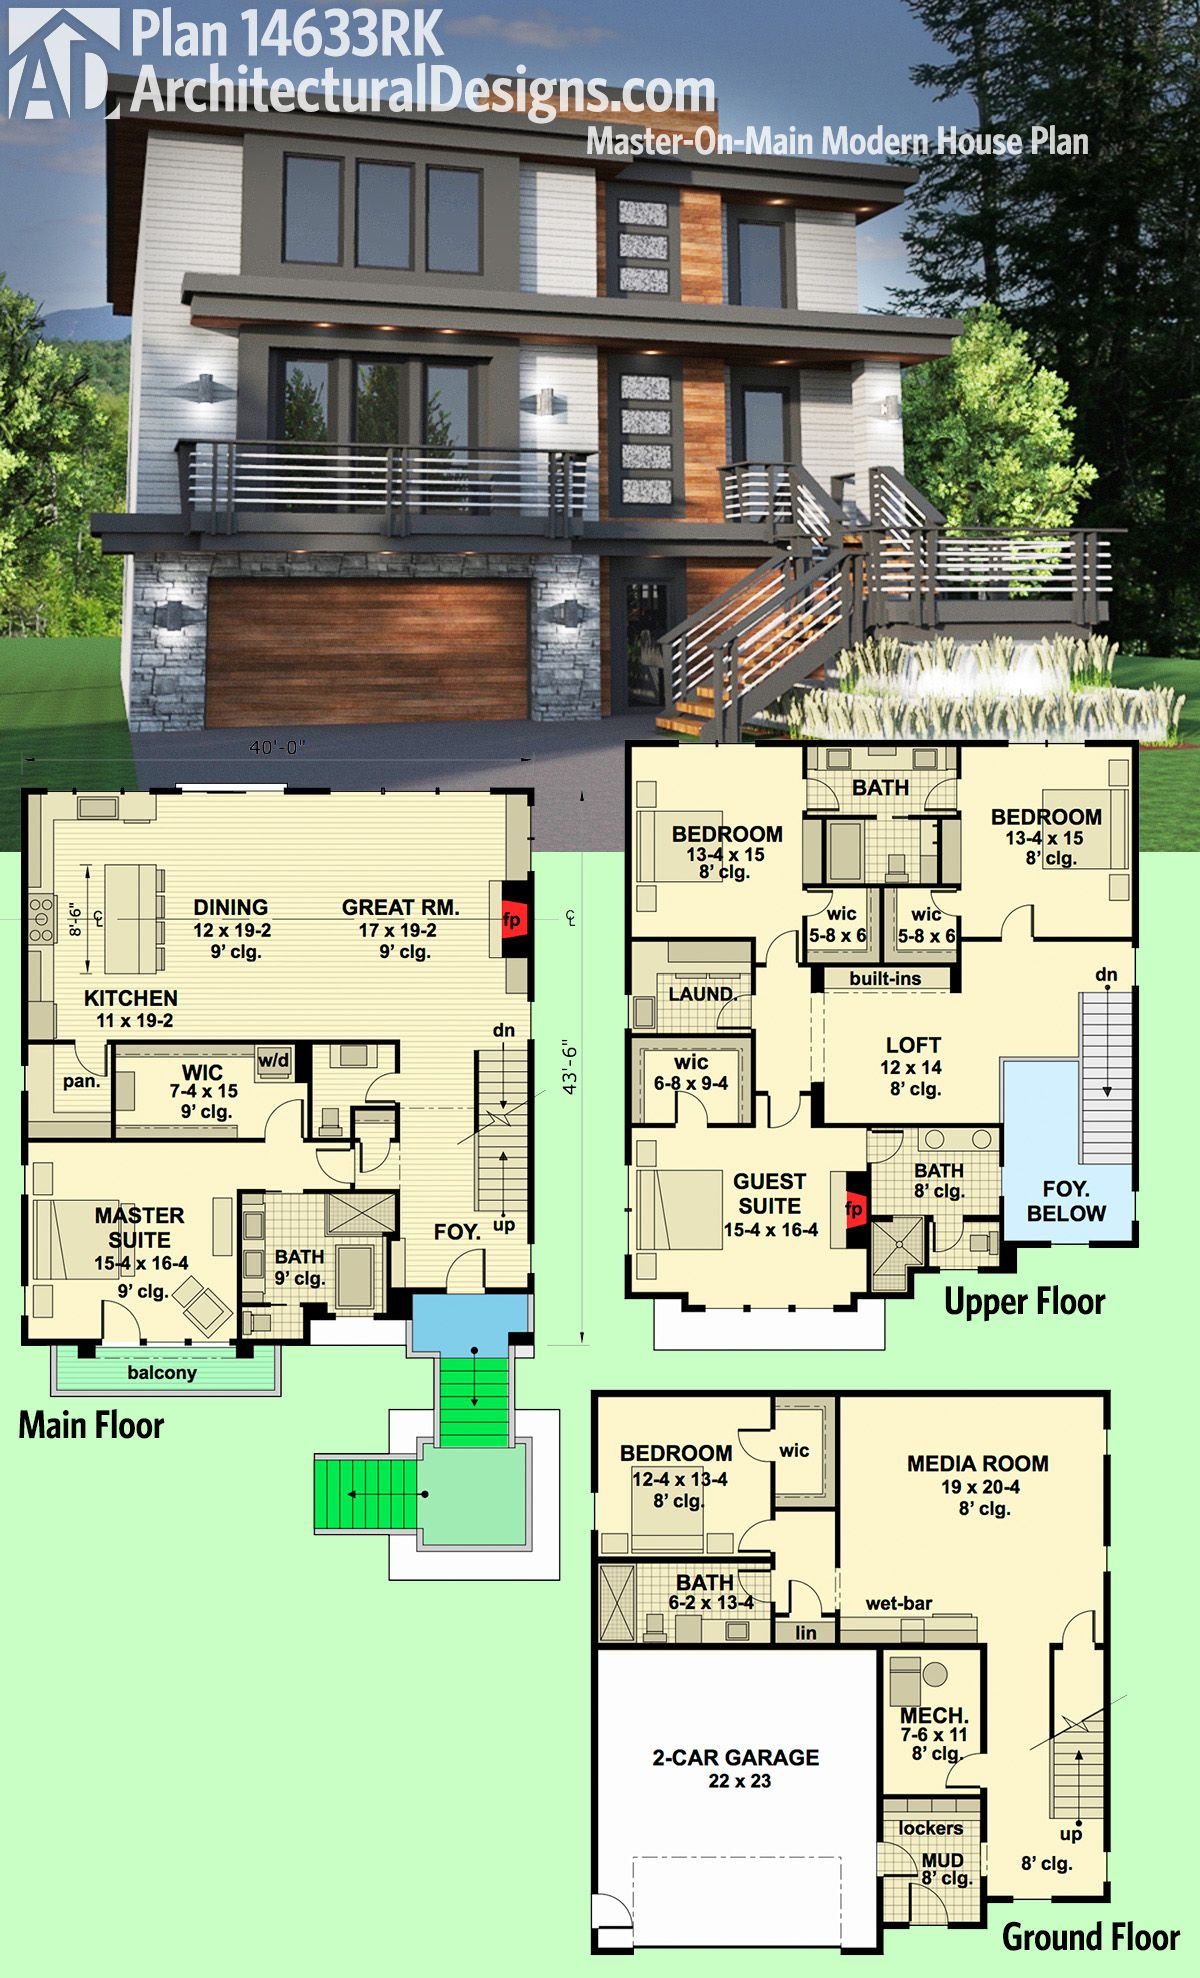 Plan 14633rk master on main modern house plan modern for Contemporary home floor plans